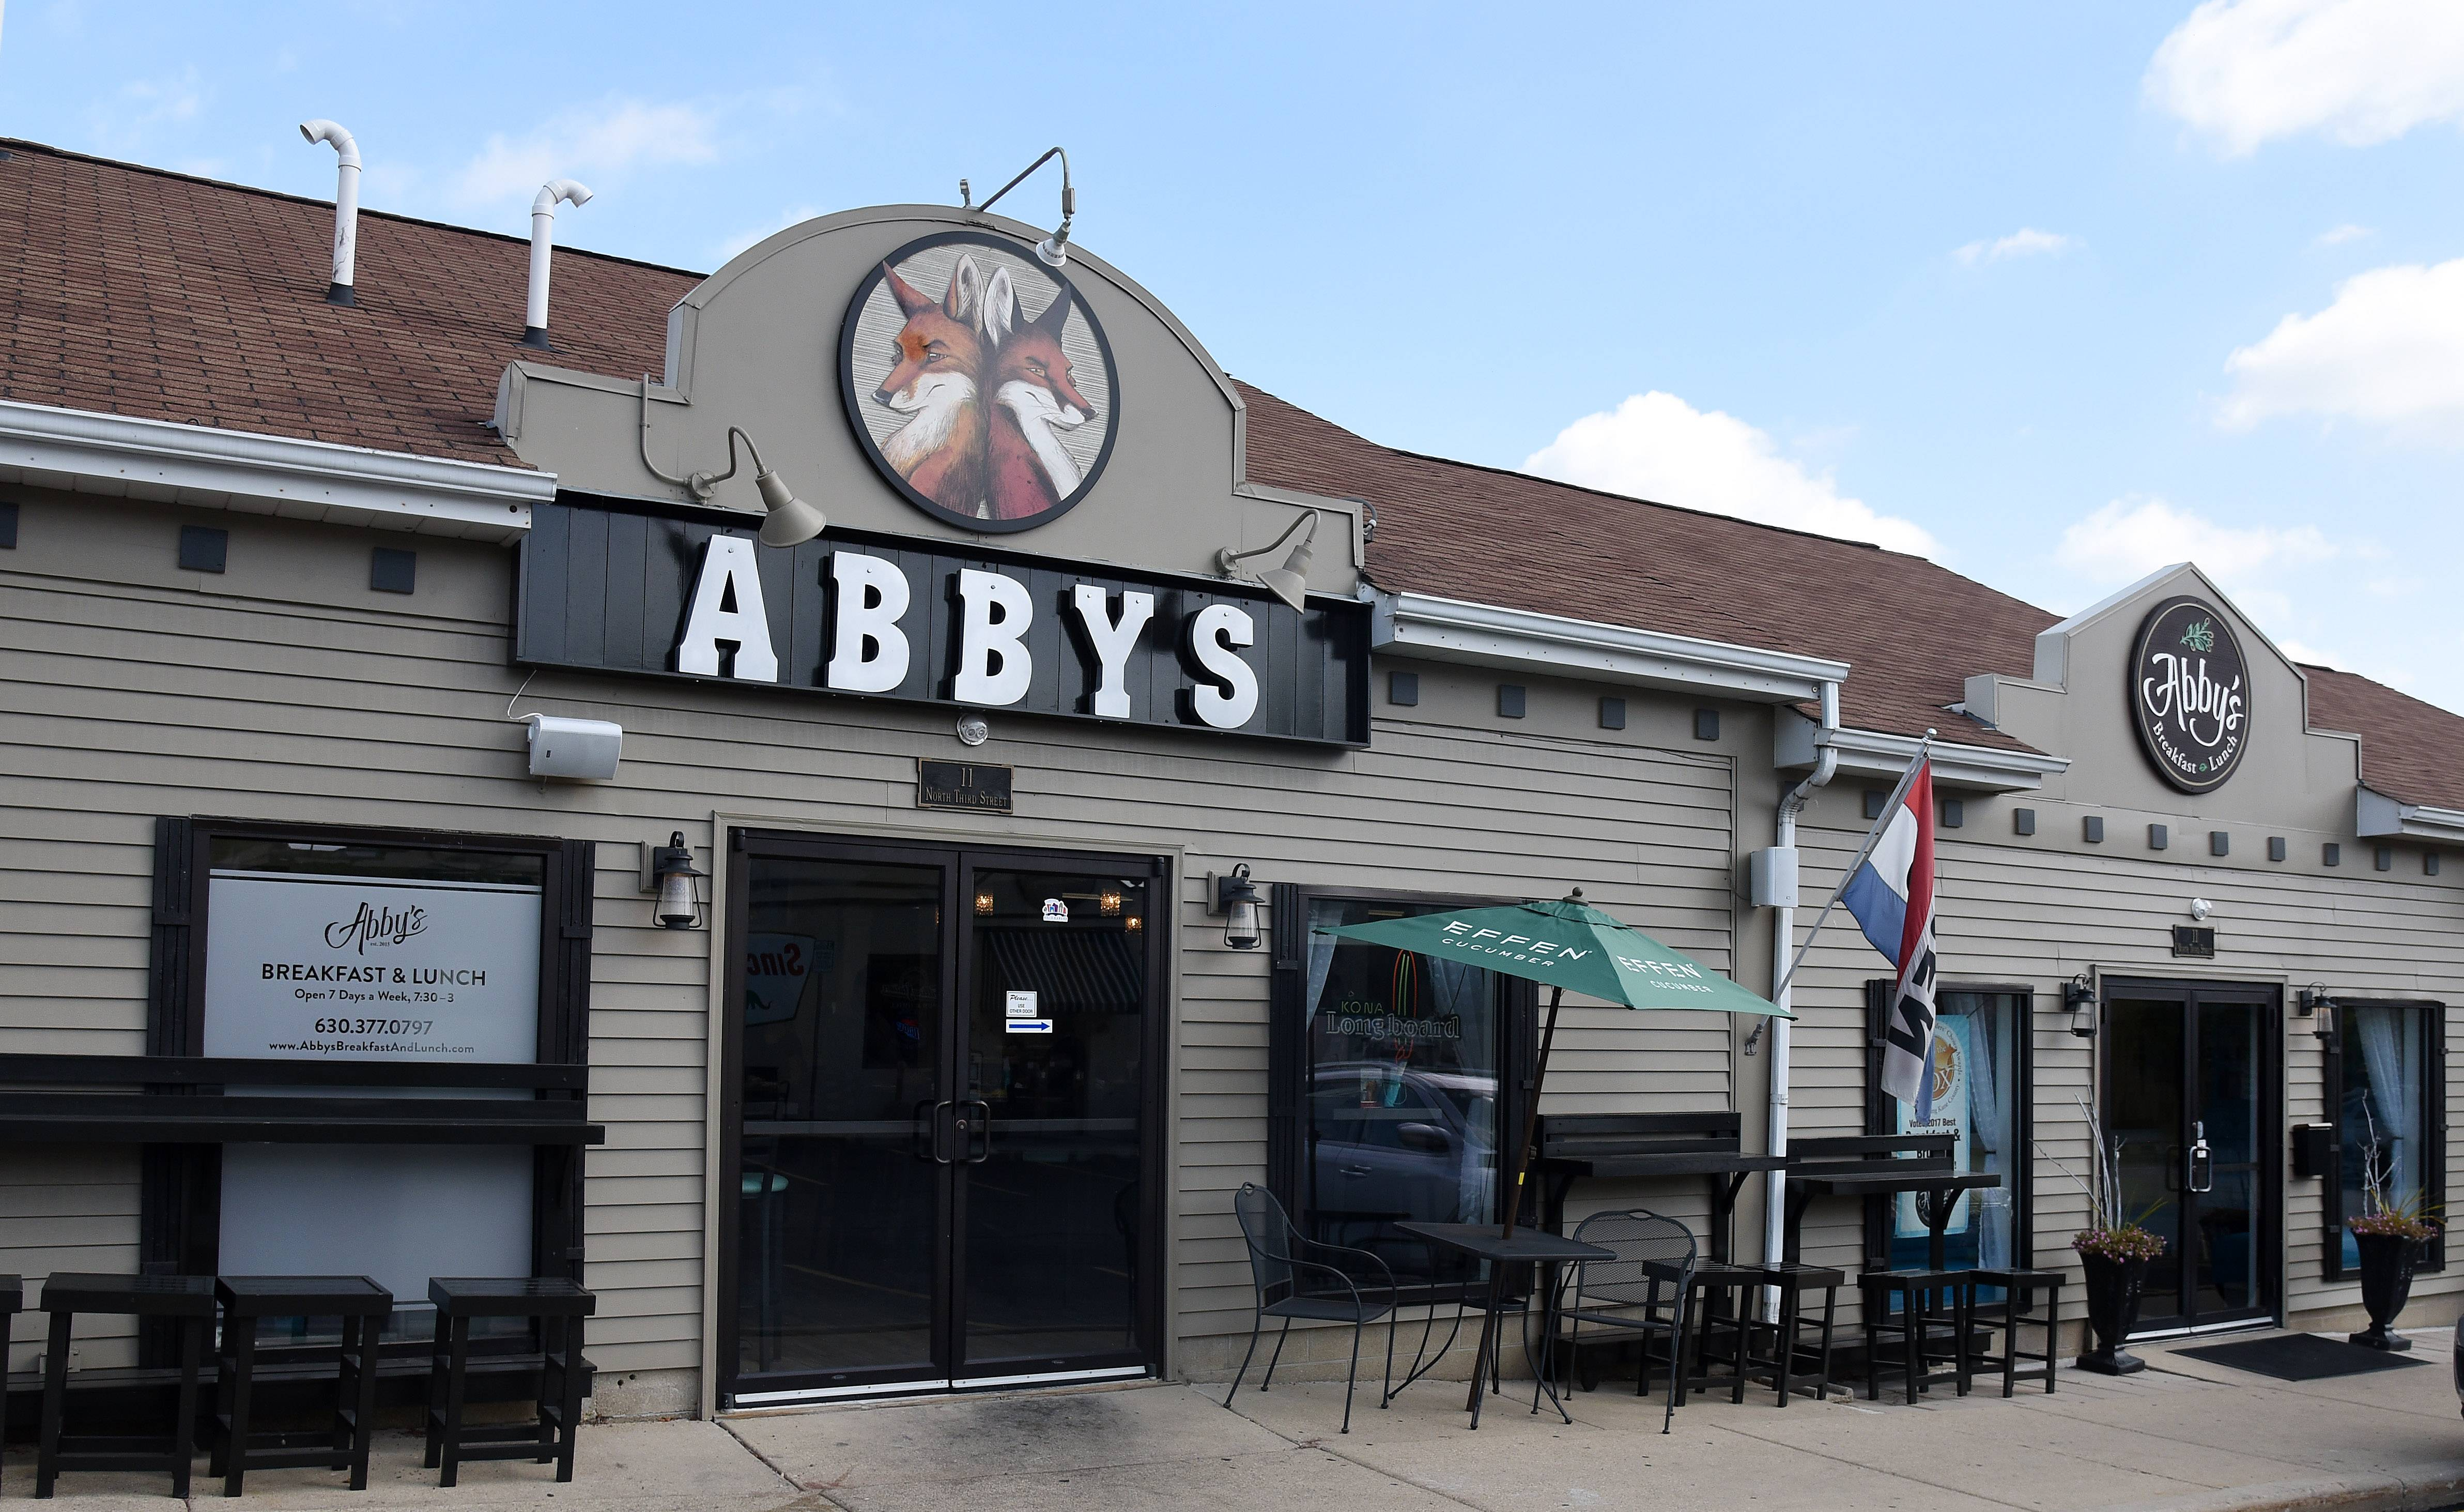 Abby's Breakfast and Lunch Restaurant in St. Charles has closed, owner Rob Mondi said.